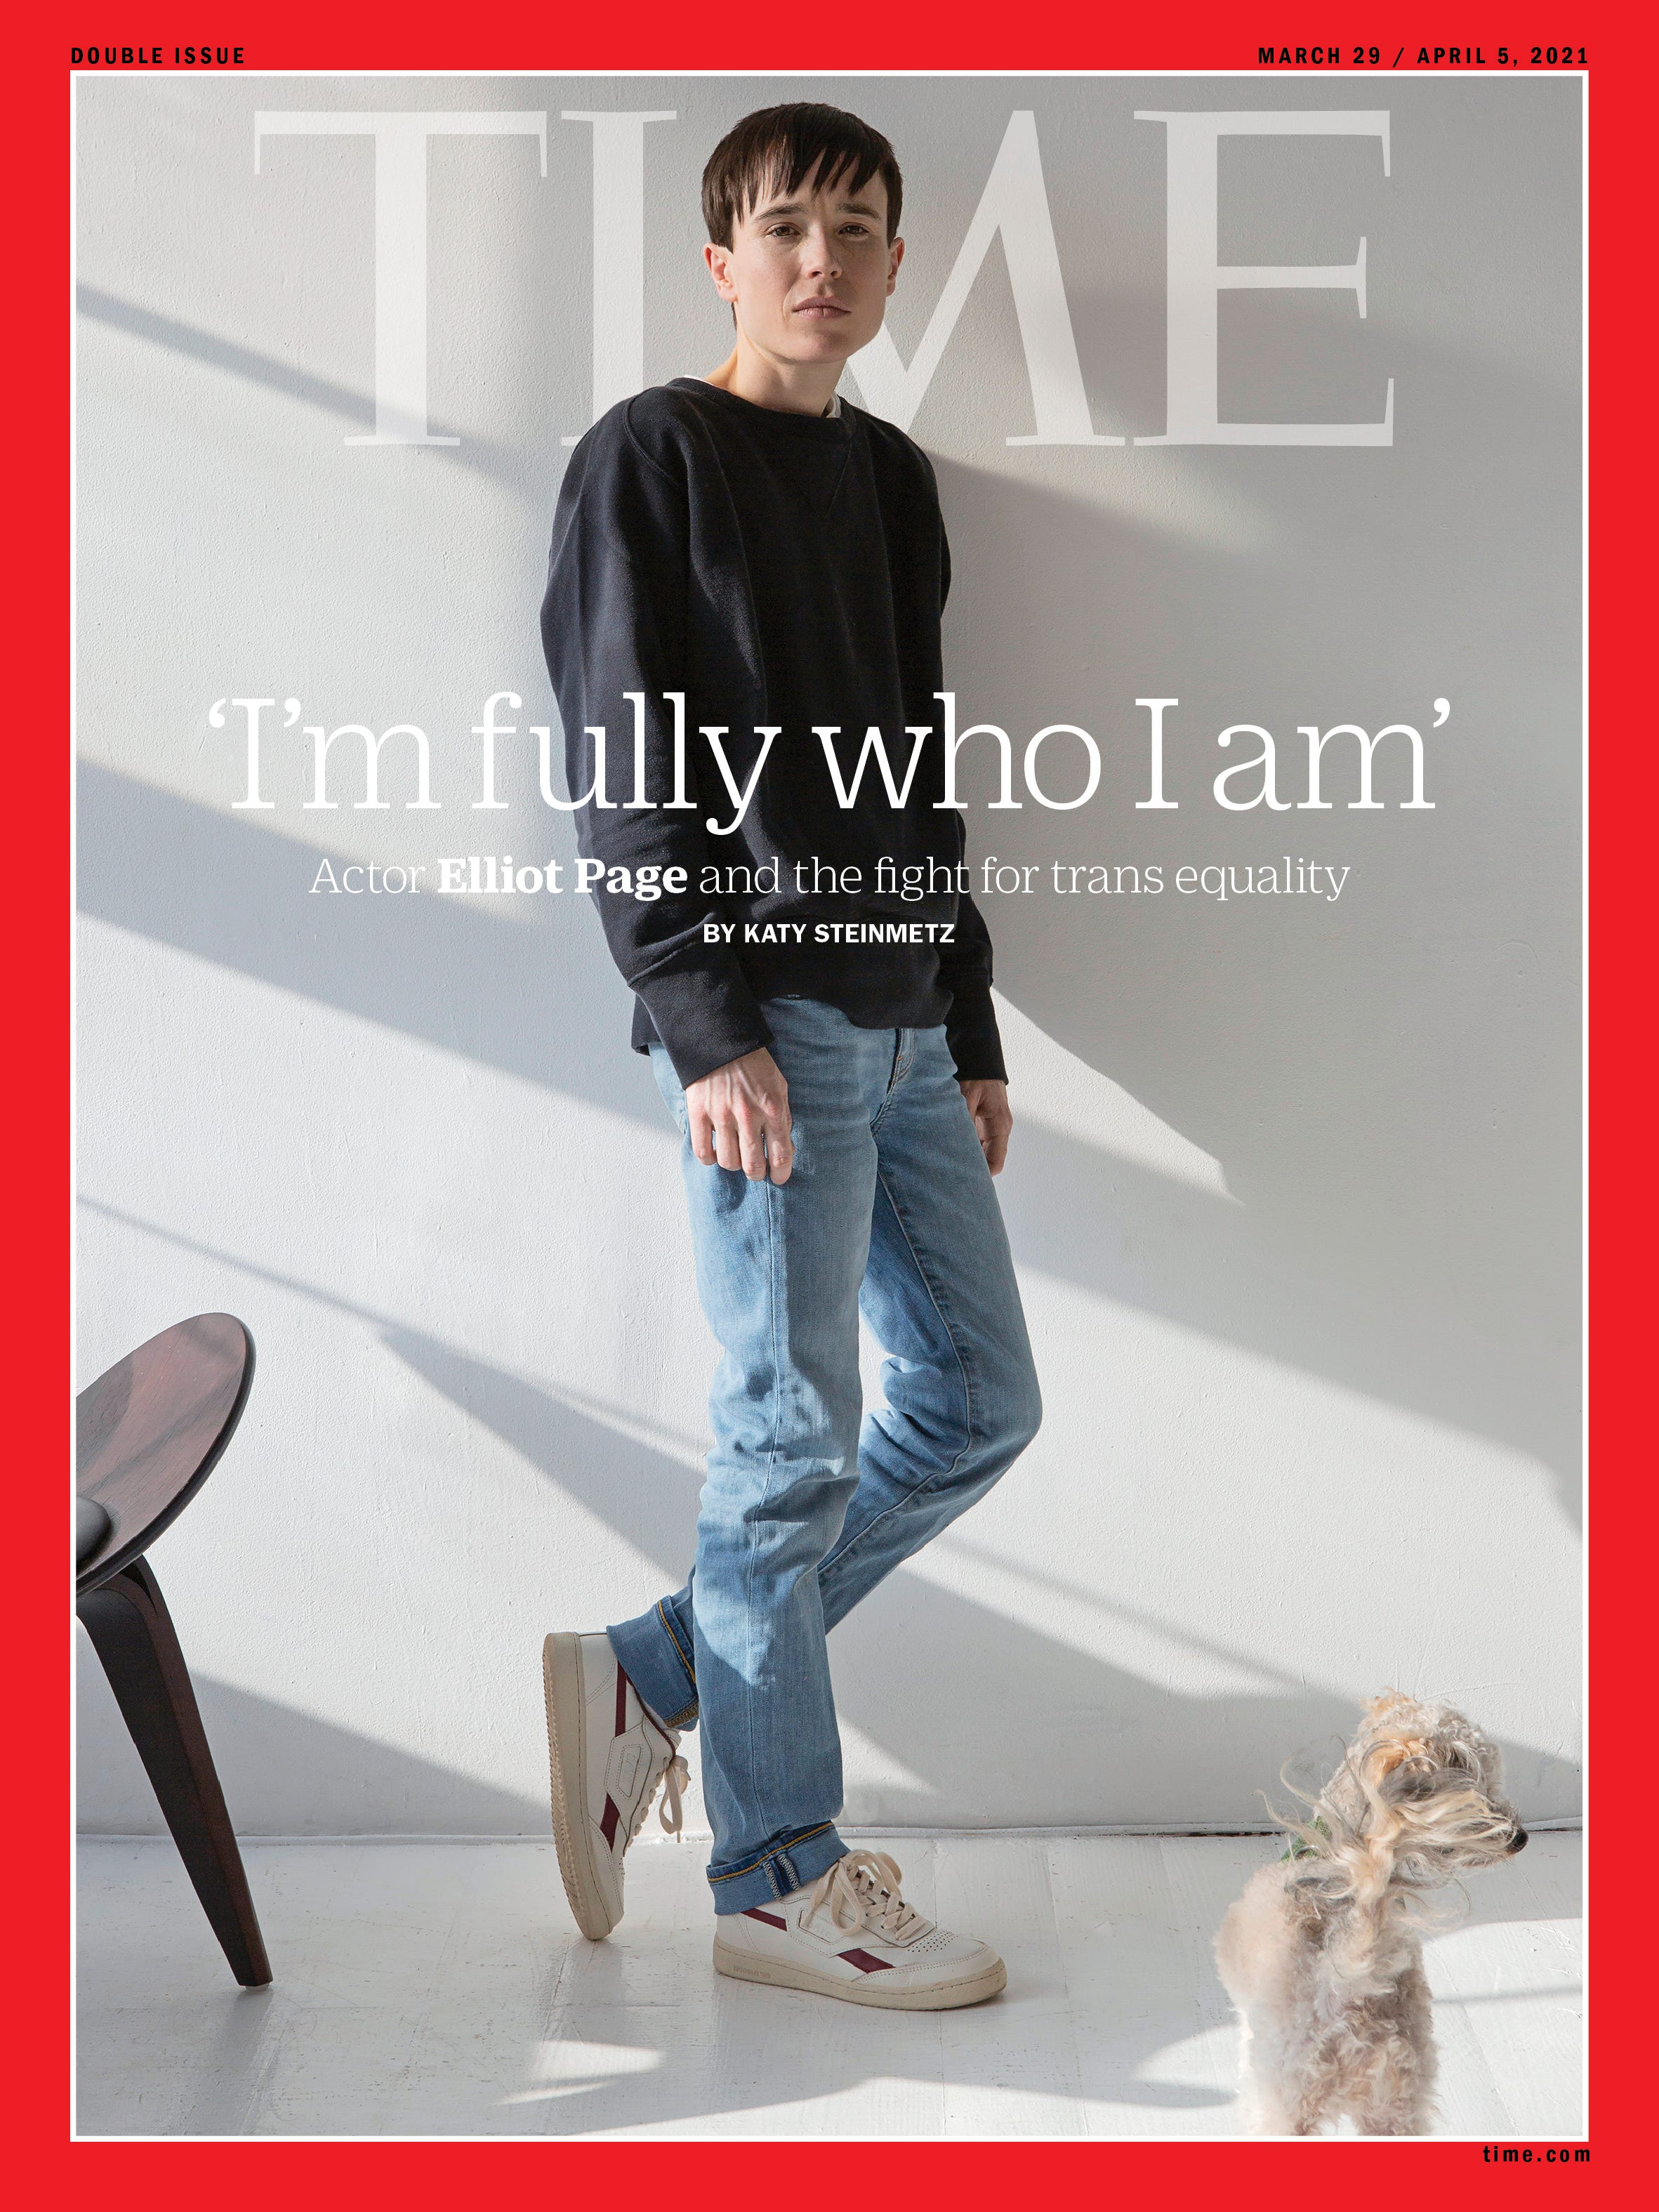 Elliot Page covers Time magazine, talks coming out and trans equality:  I m fully who I am